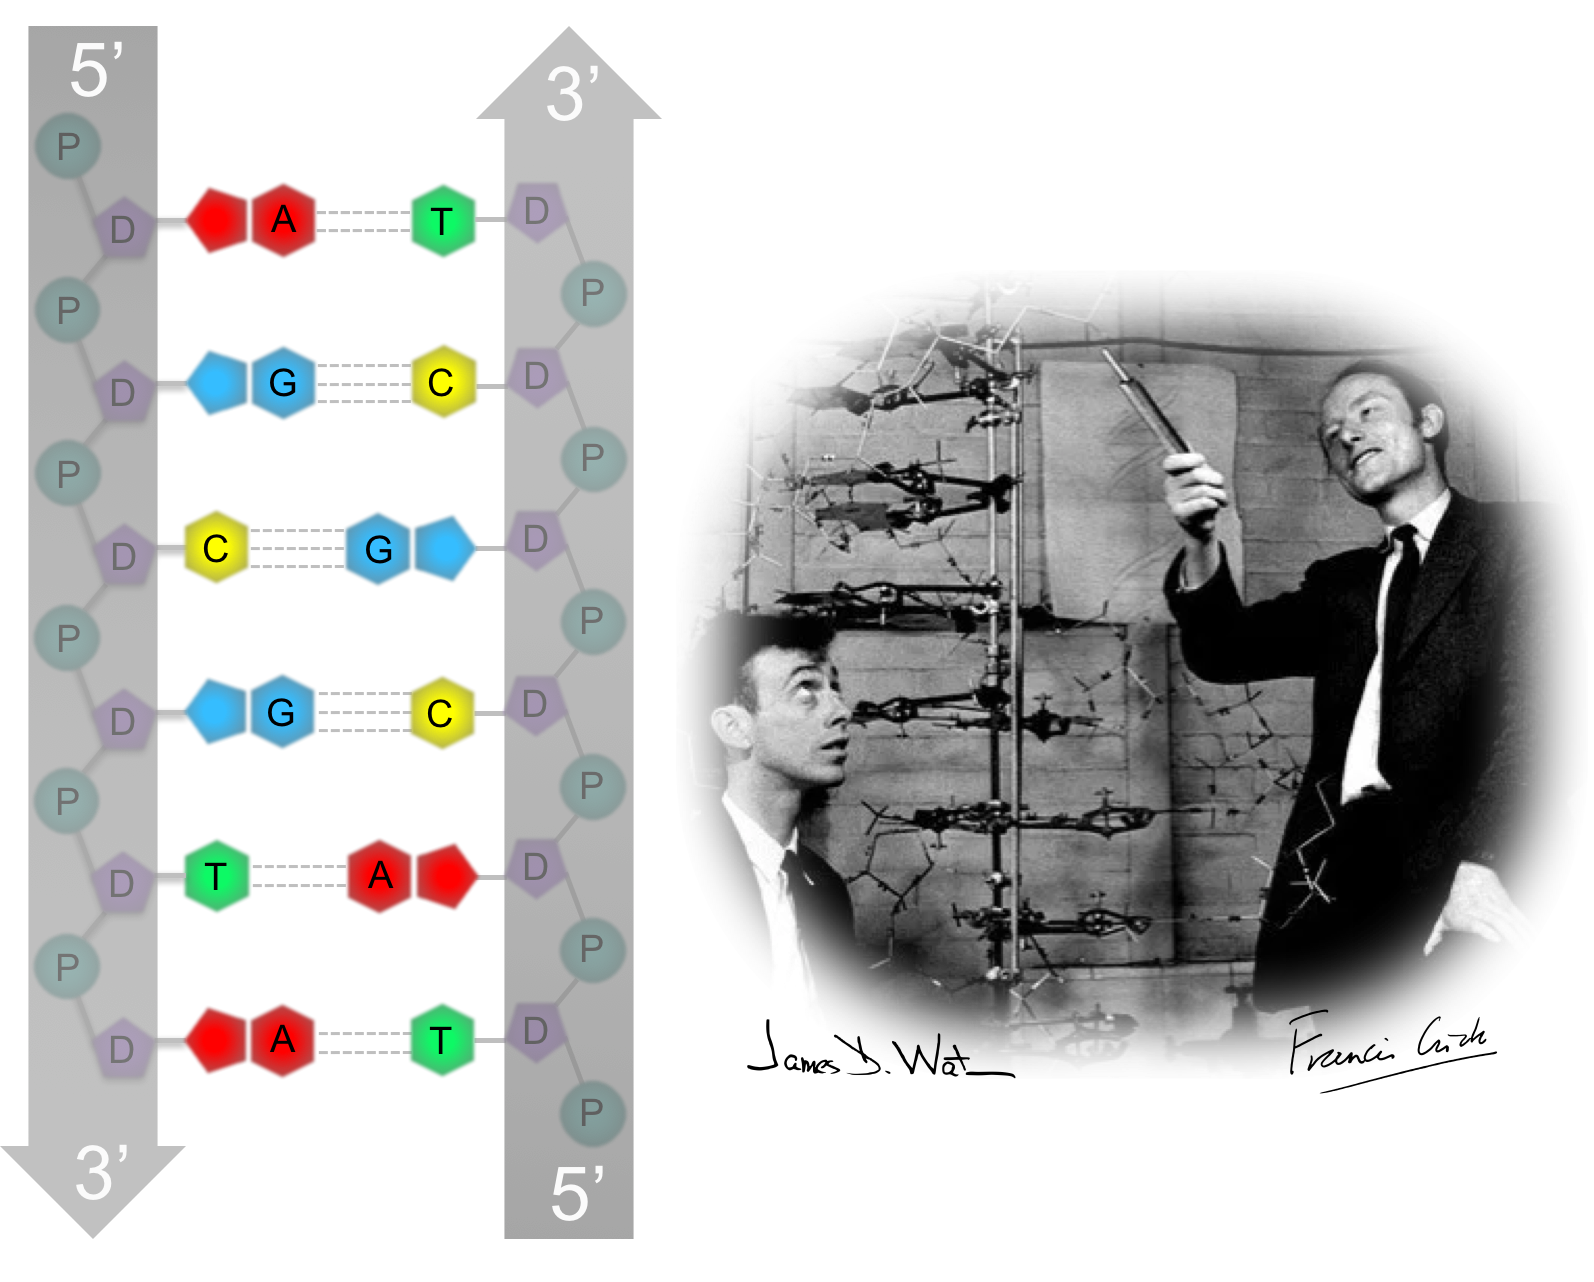 Figure 9.  Secondary structure of DNA. James Watson and Francis Crick uncovered the secondary structure of DNA. 1) DNA is double stranded. 2) The strands are  antiparallel. 3) The strands are held together by  base pairing  of hydrogen bonds between the nitrogenous bases, where adenine binds with thymine and cytosine binds with guanine.